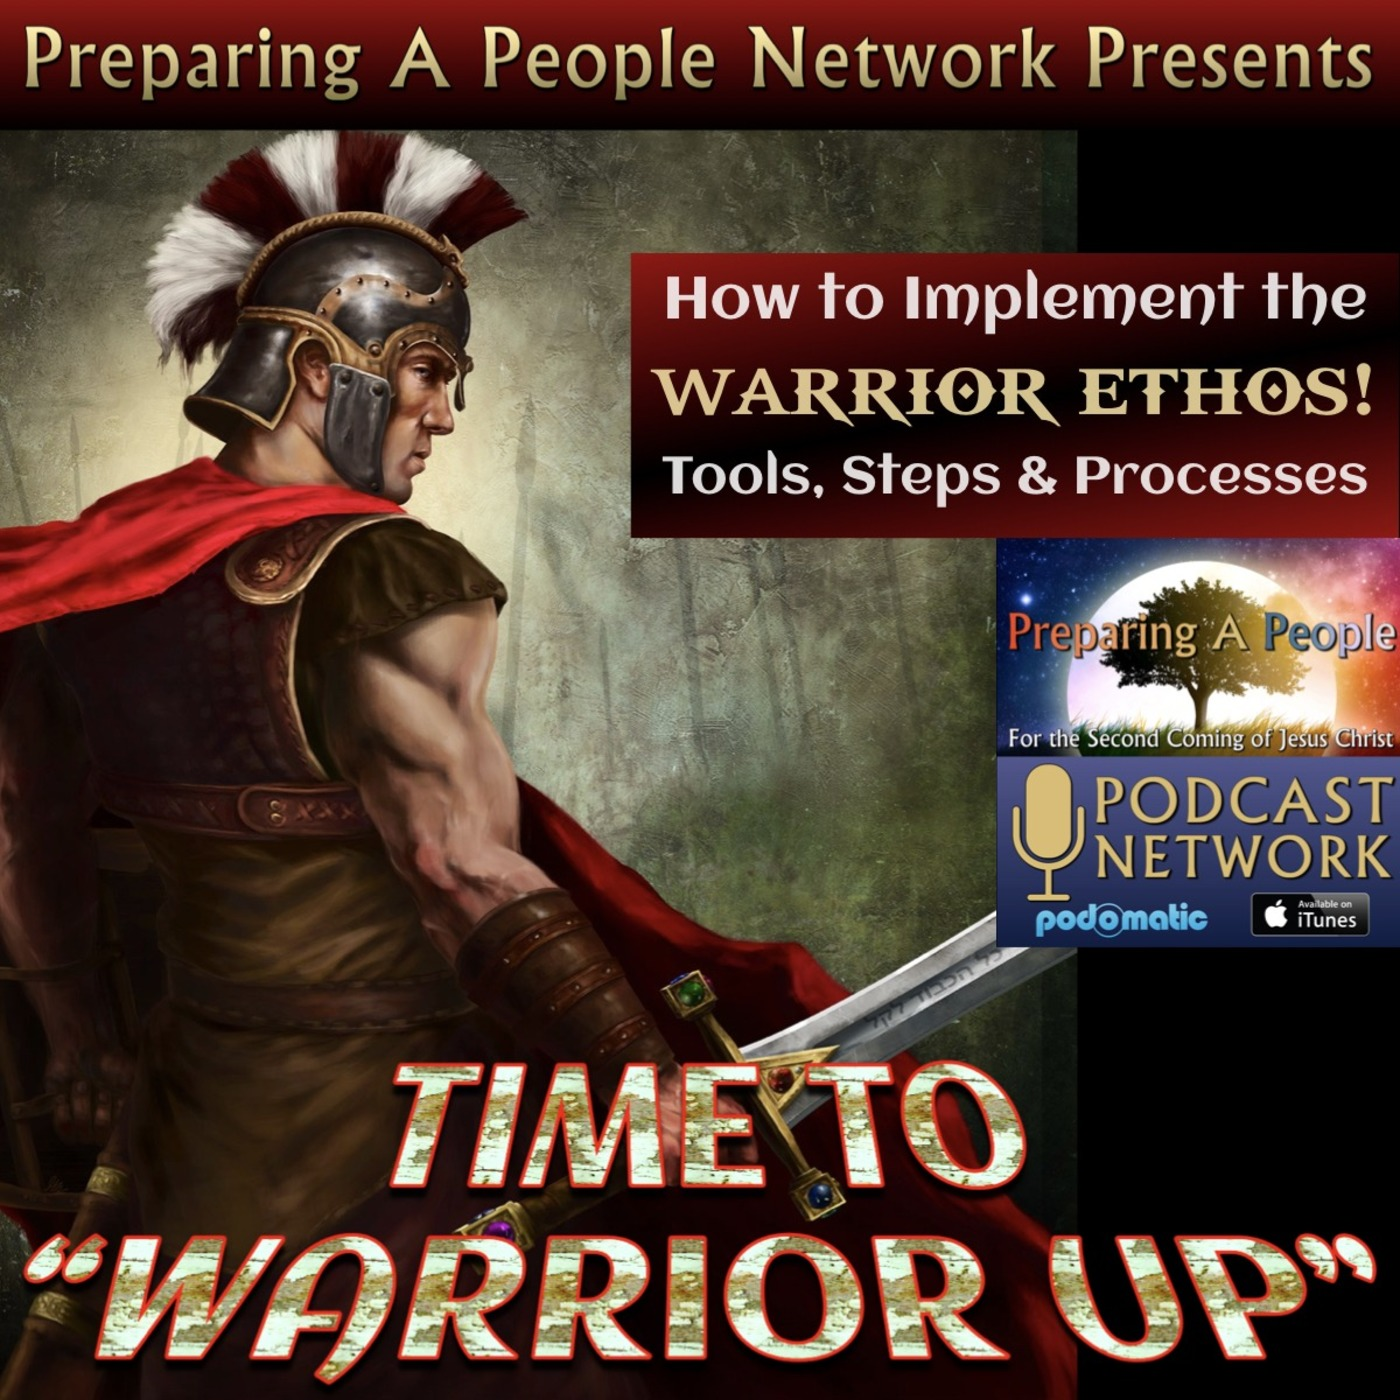 01 - Time To Warrior Up Podcast - Introduction Preparing A